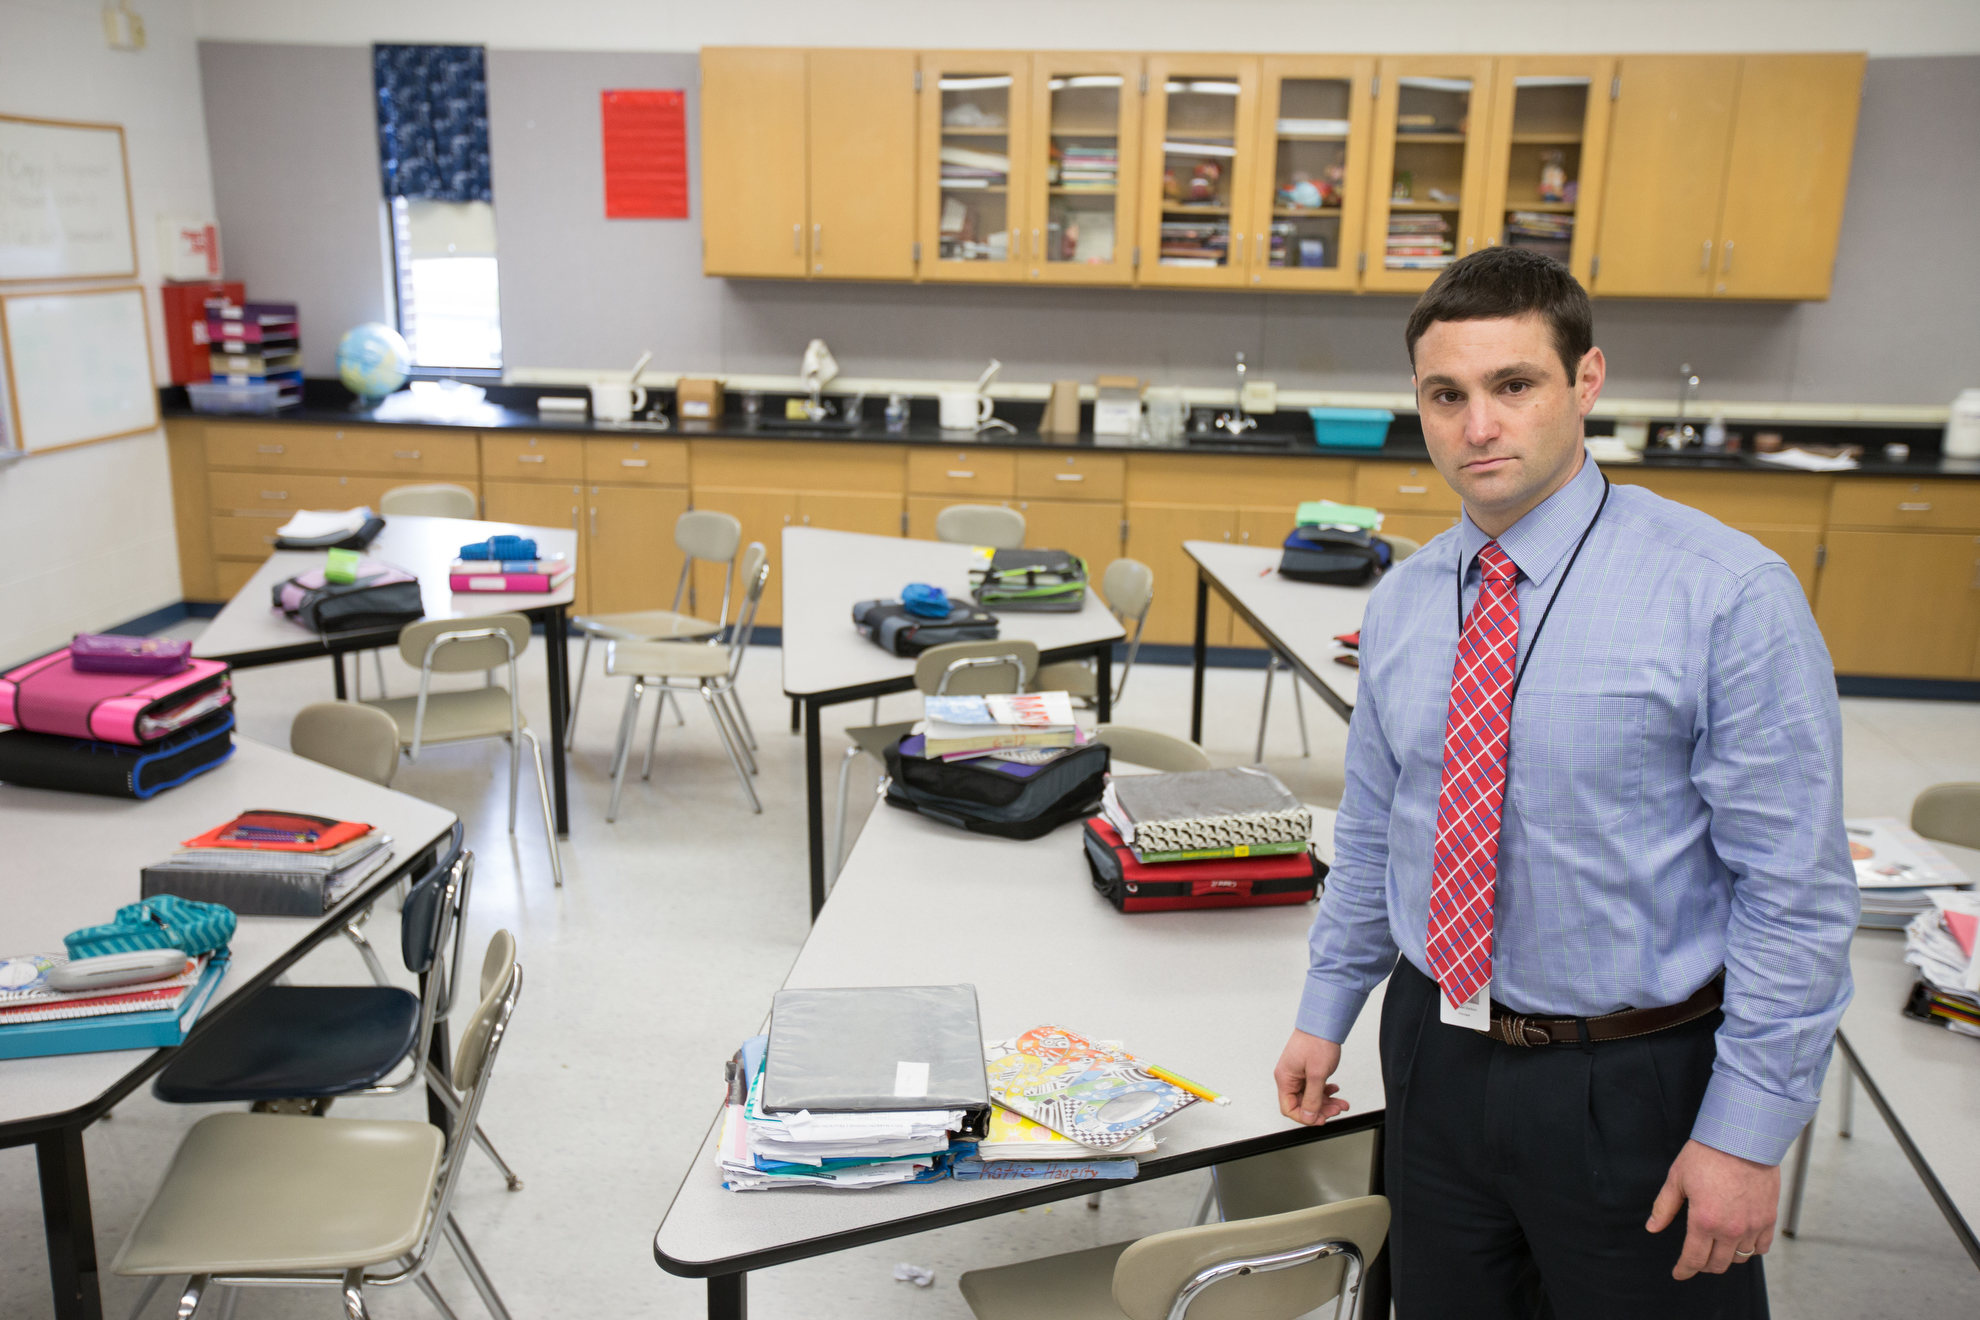 Principal Michael Zackon in one of the under equipped science labs at Milford Middle School, in Quakertown, Pennsylvania, Friday, March 31, 2017. Quakertown School District has raised taxes every year for the past three decades, but still finds itself $5 million dollars in debt. The superintendant has proposed closing three schools, including Milford Middle School, which is an older school that lacks basic facilities such as lab tables, an auditorium, and sufficient classrooms.